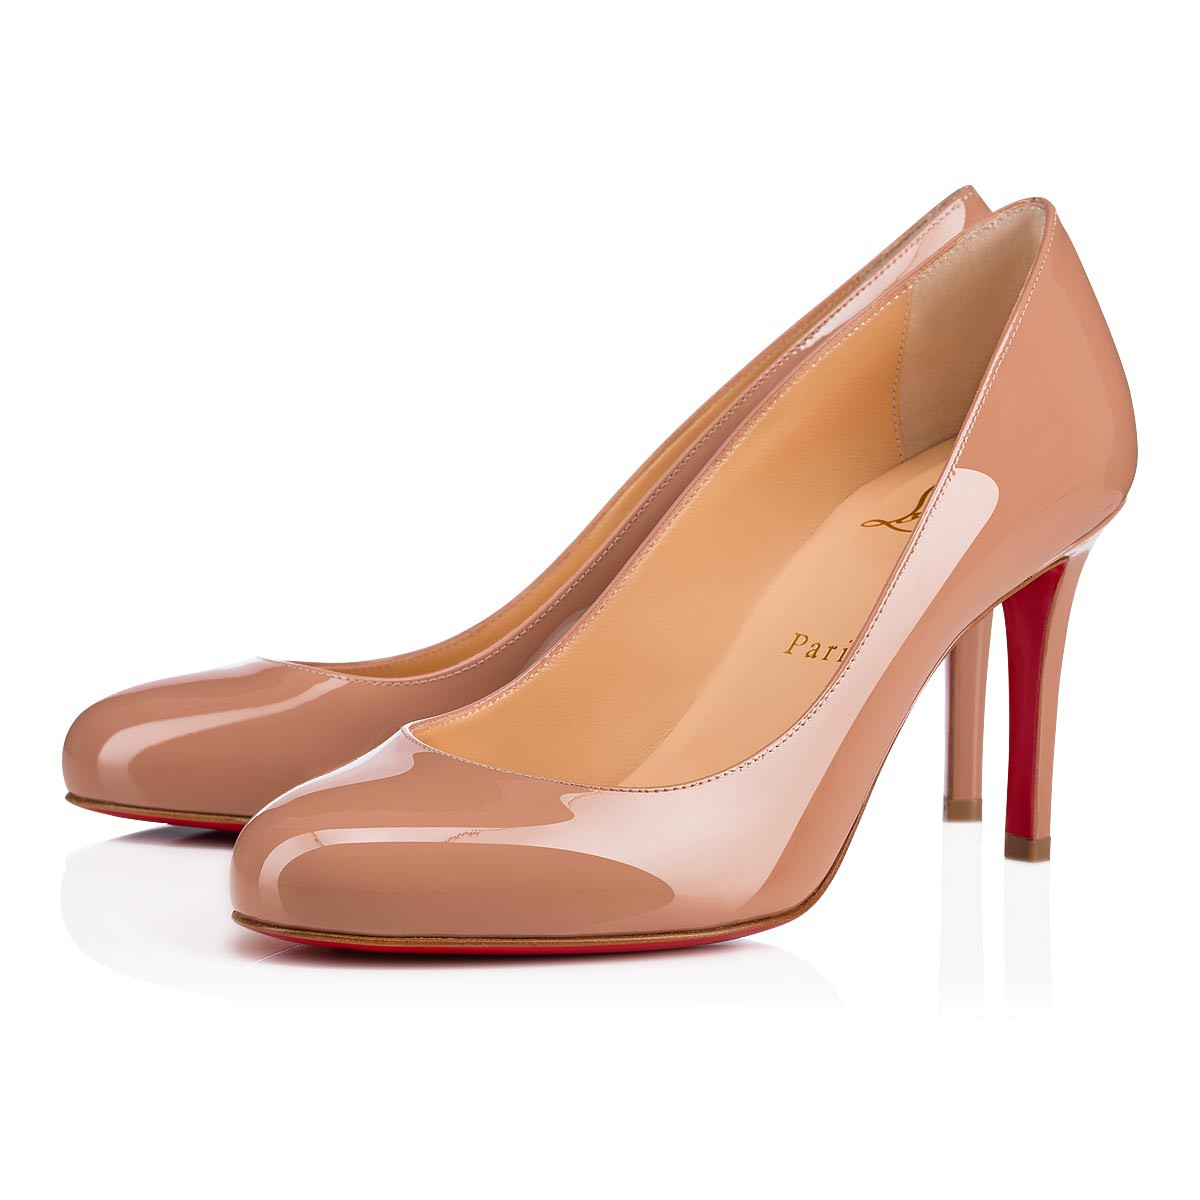 FIFILLE 85 Nude Patent Leather - Women